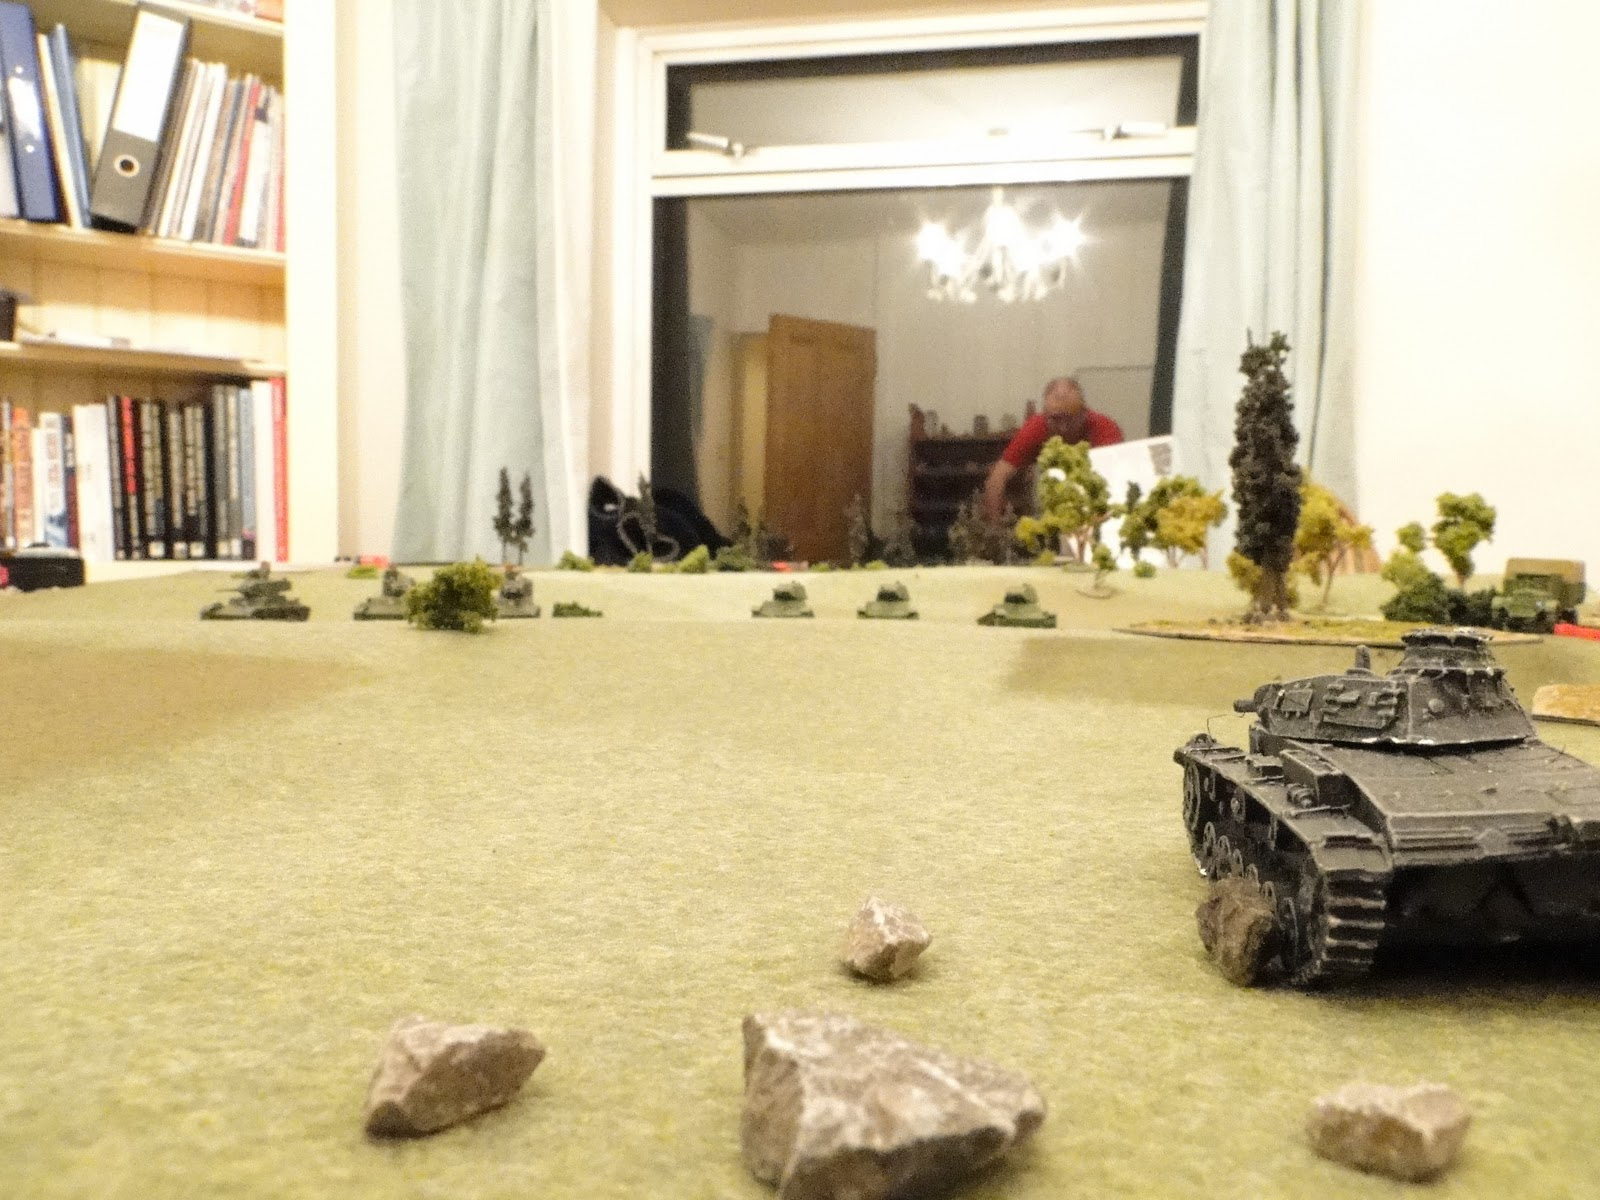 The Panzer IIIs clock two platoons of T-26s moving into hull down positions.